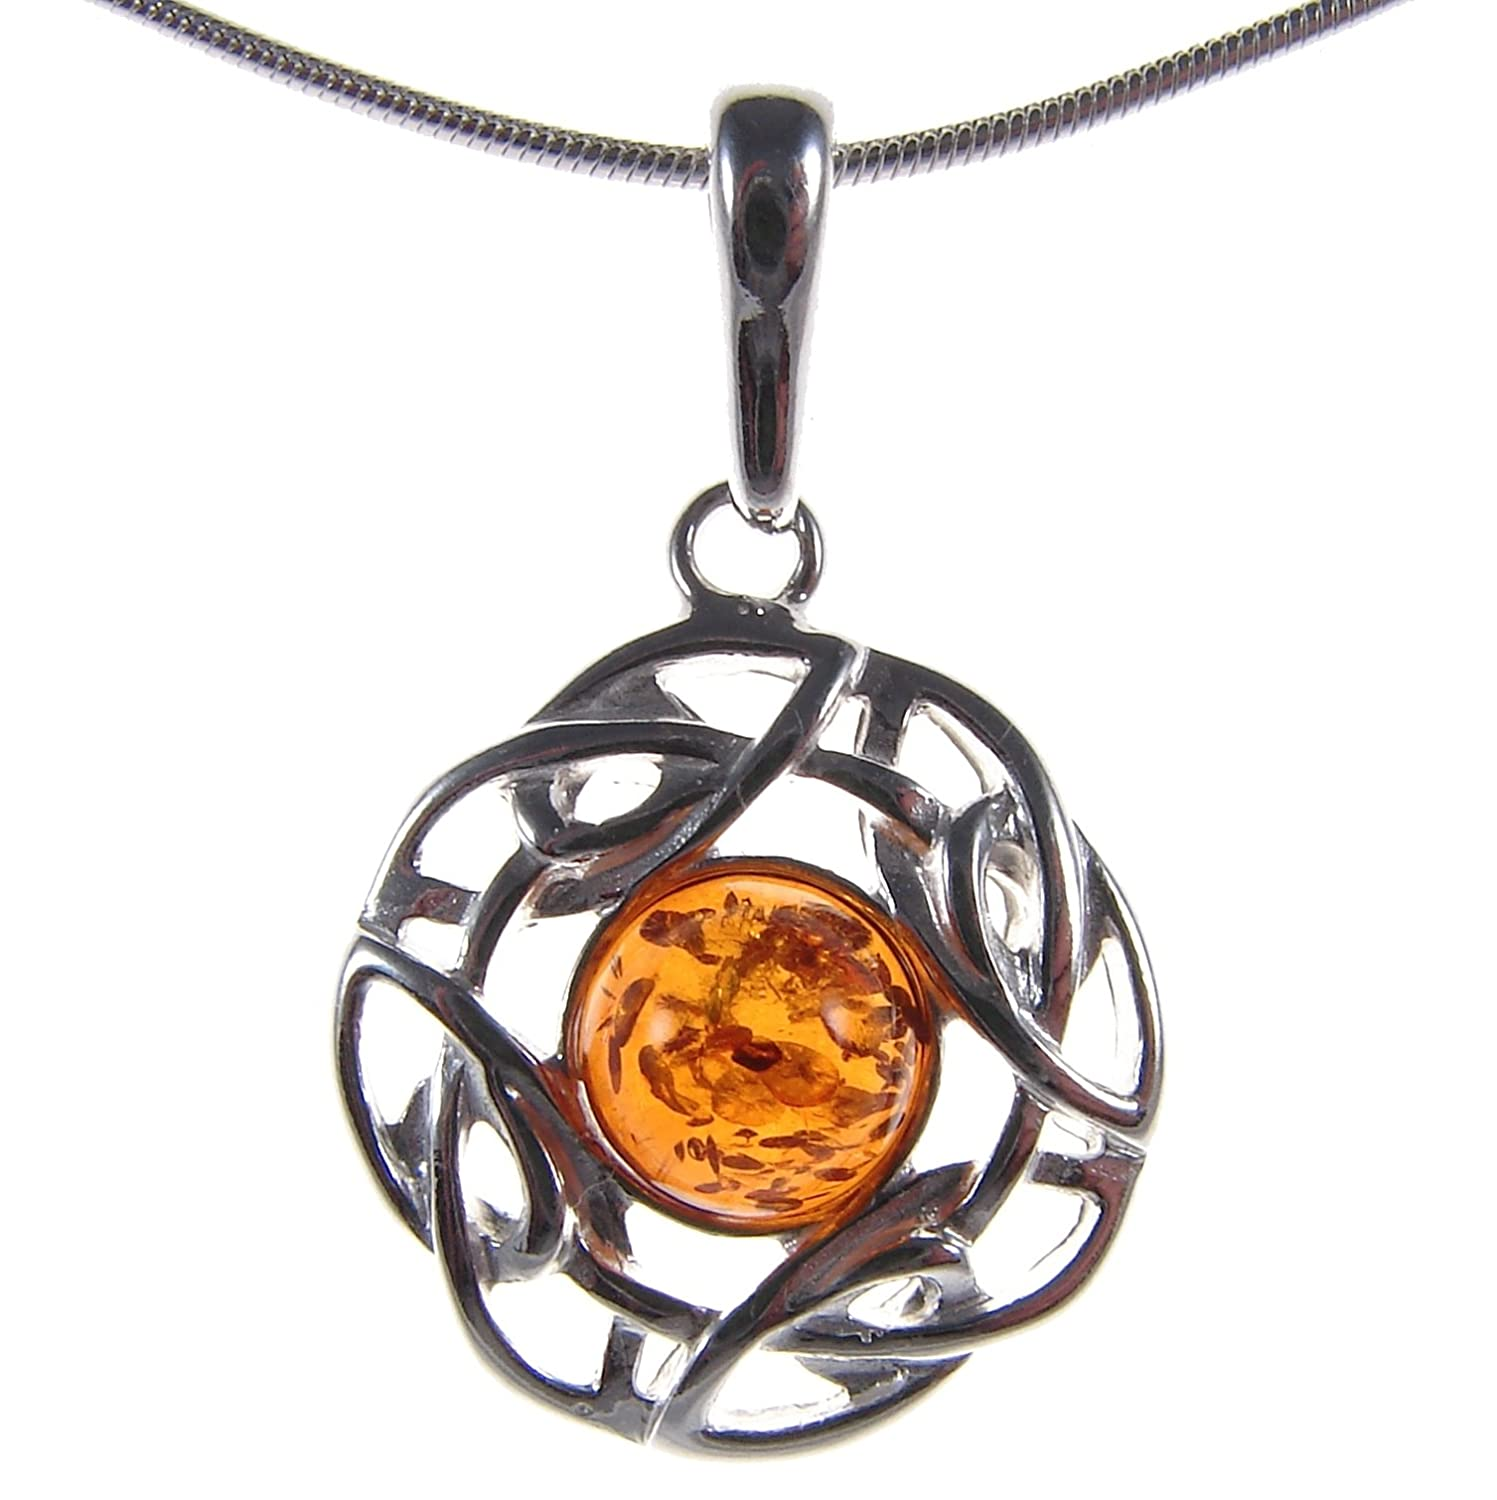 10 12 14 16 18 20 22 24 26 28 30 32 34 36 38 40 1mm ITALIAN SNAKE CHAIN BALTIC AMBER AND STERLING SILVER 925 PENDANT NECKLACE